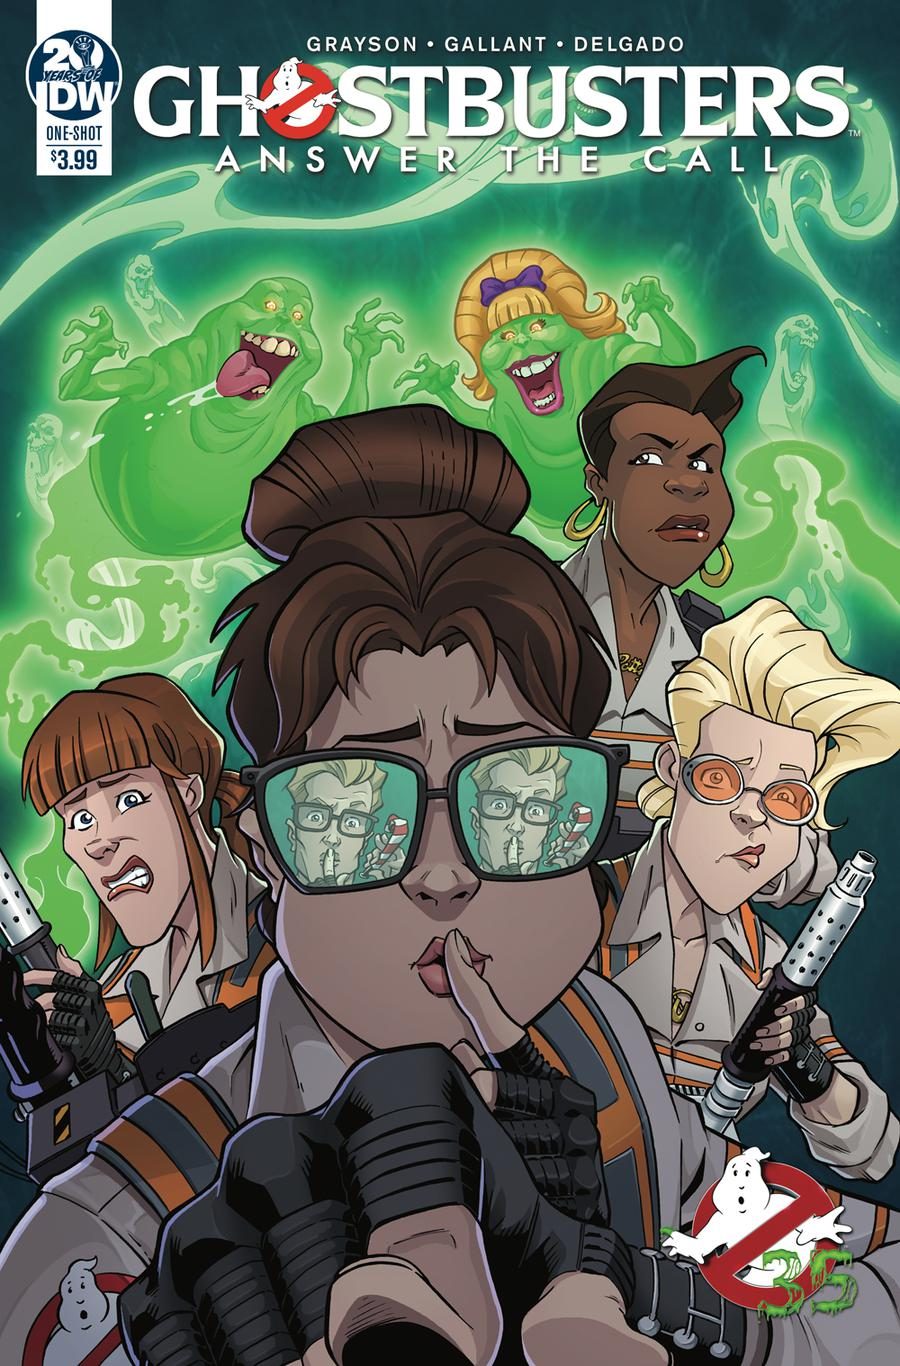 Ghostbusters 35th Anniversary Answer The Call Ghostbusters Cover A Regular SL Gallant Cover